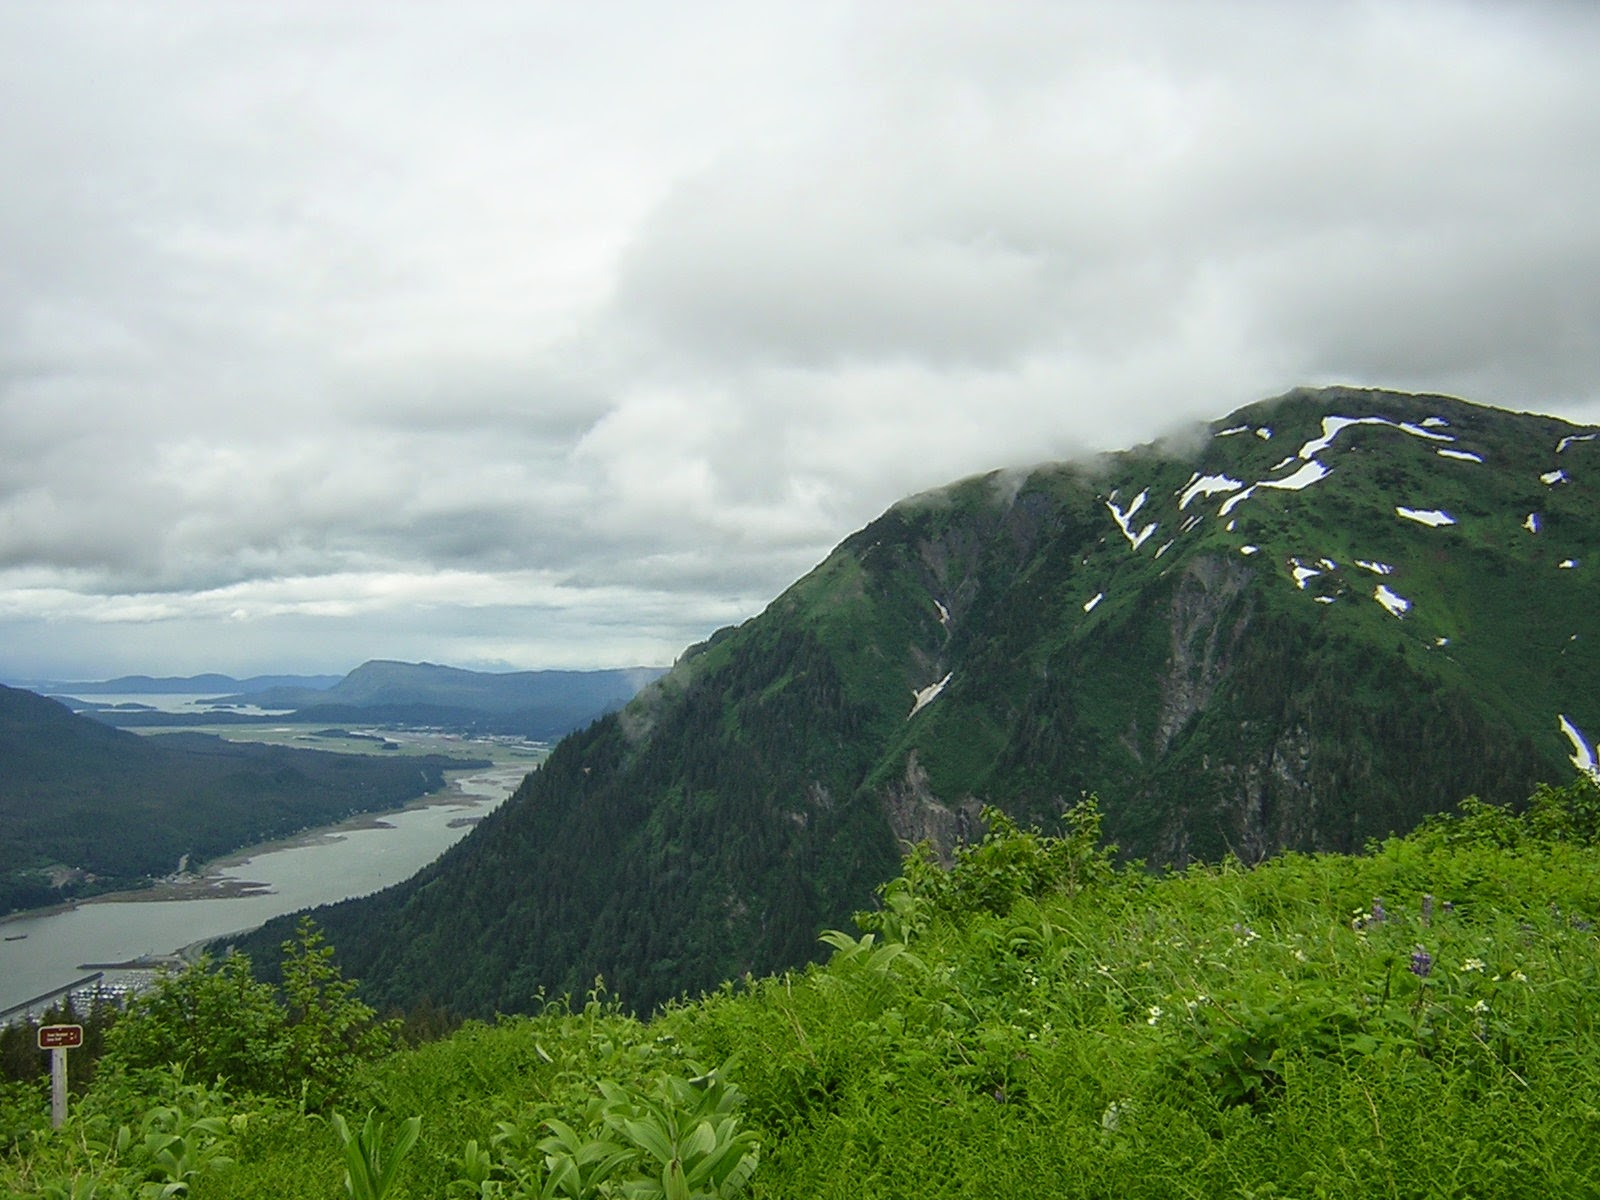 A channel of water between two mountains. There are more mountains in the distance. In the foreground is a green meadow looking down on the water and town below